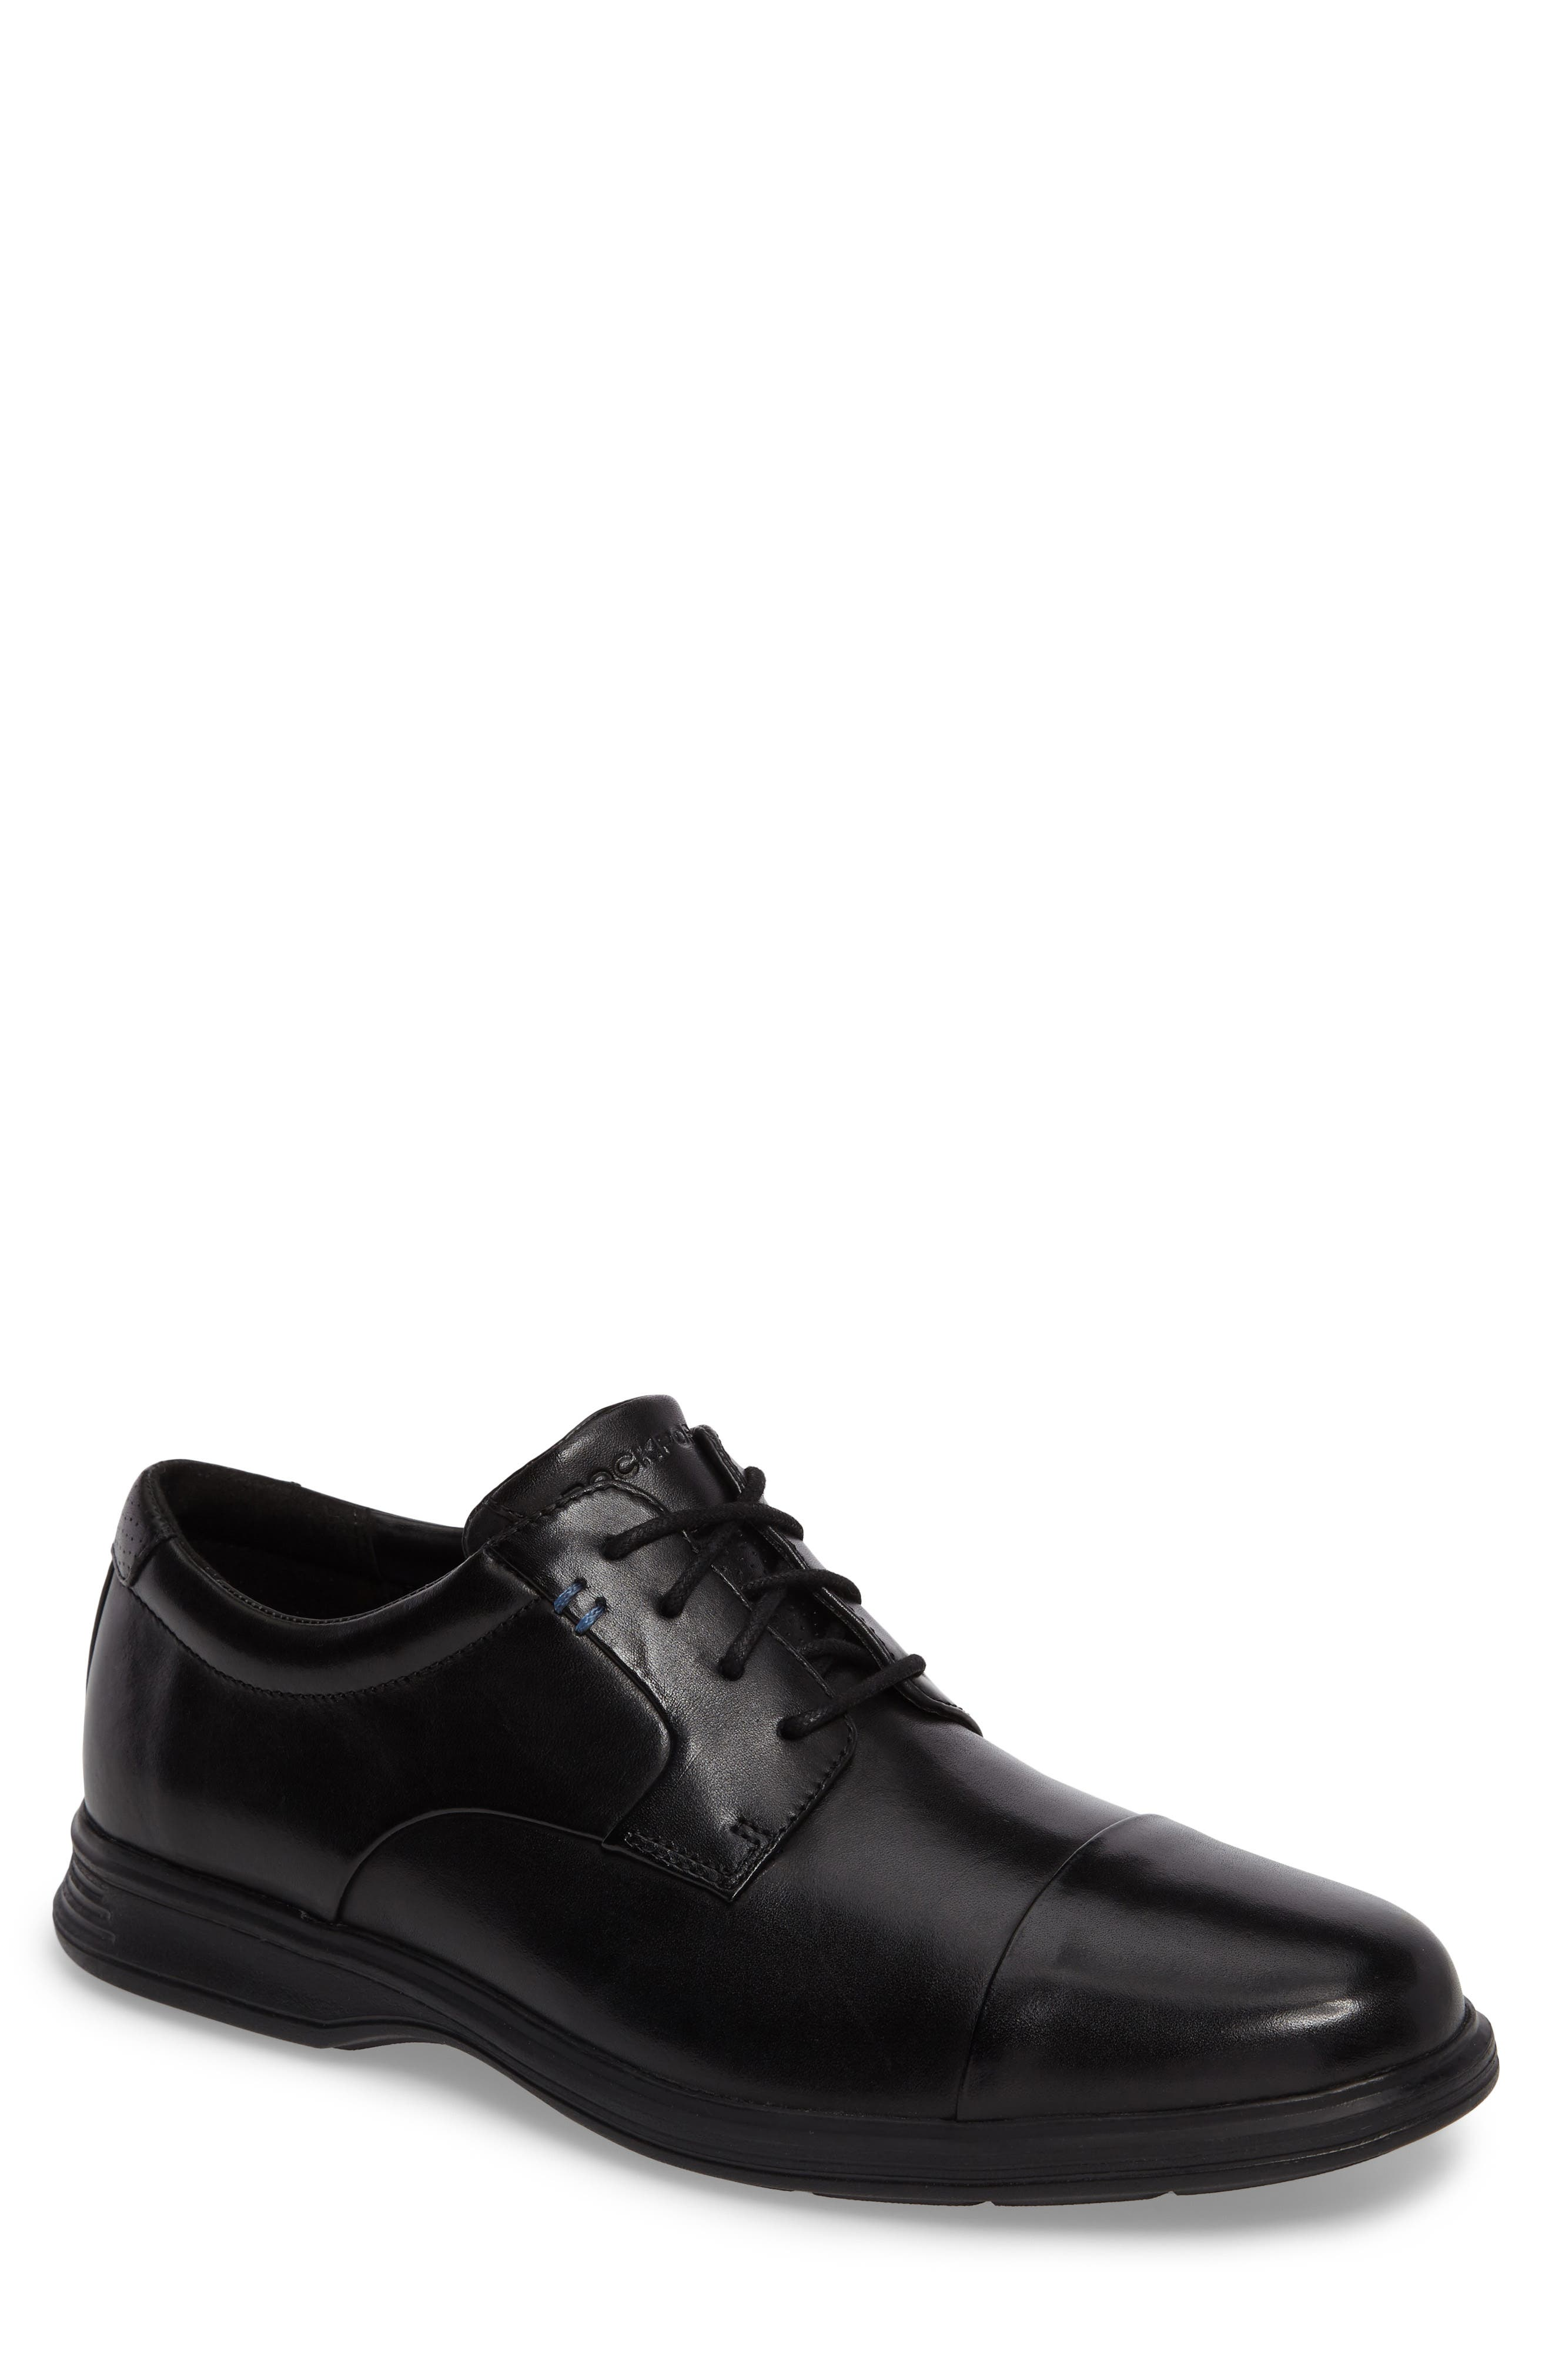 Rockport DresSports 2 Lite Cap Toe Derby (Men)